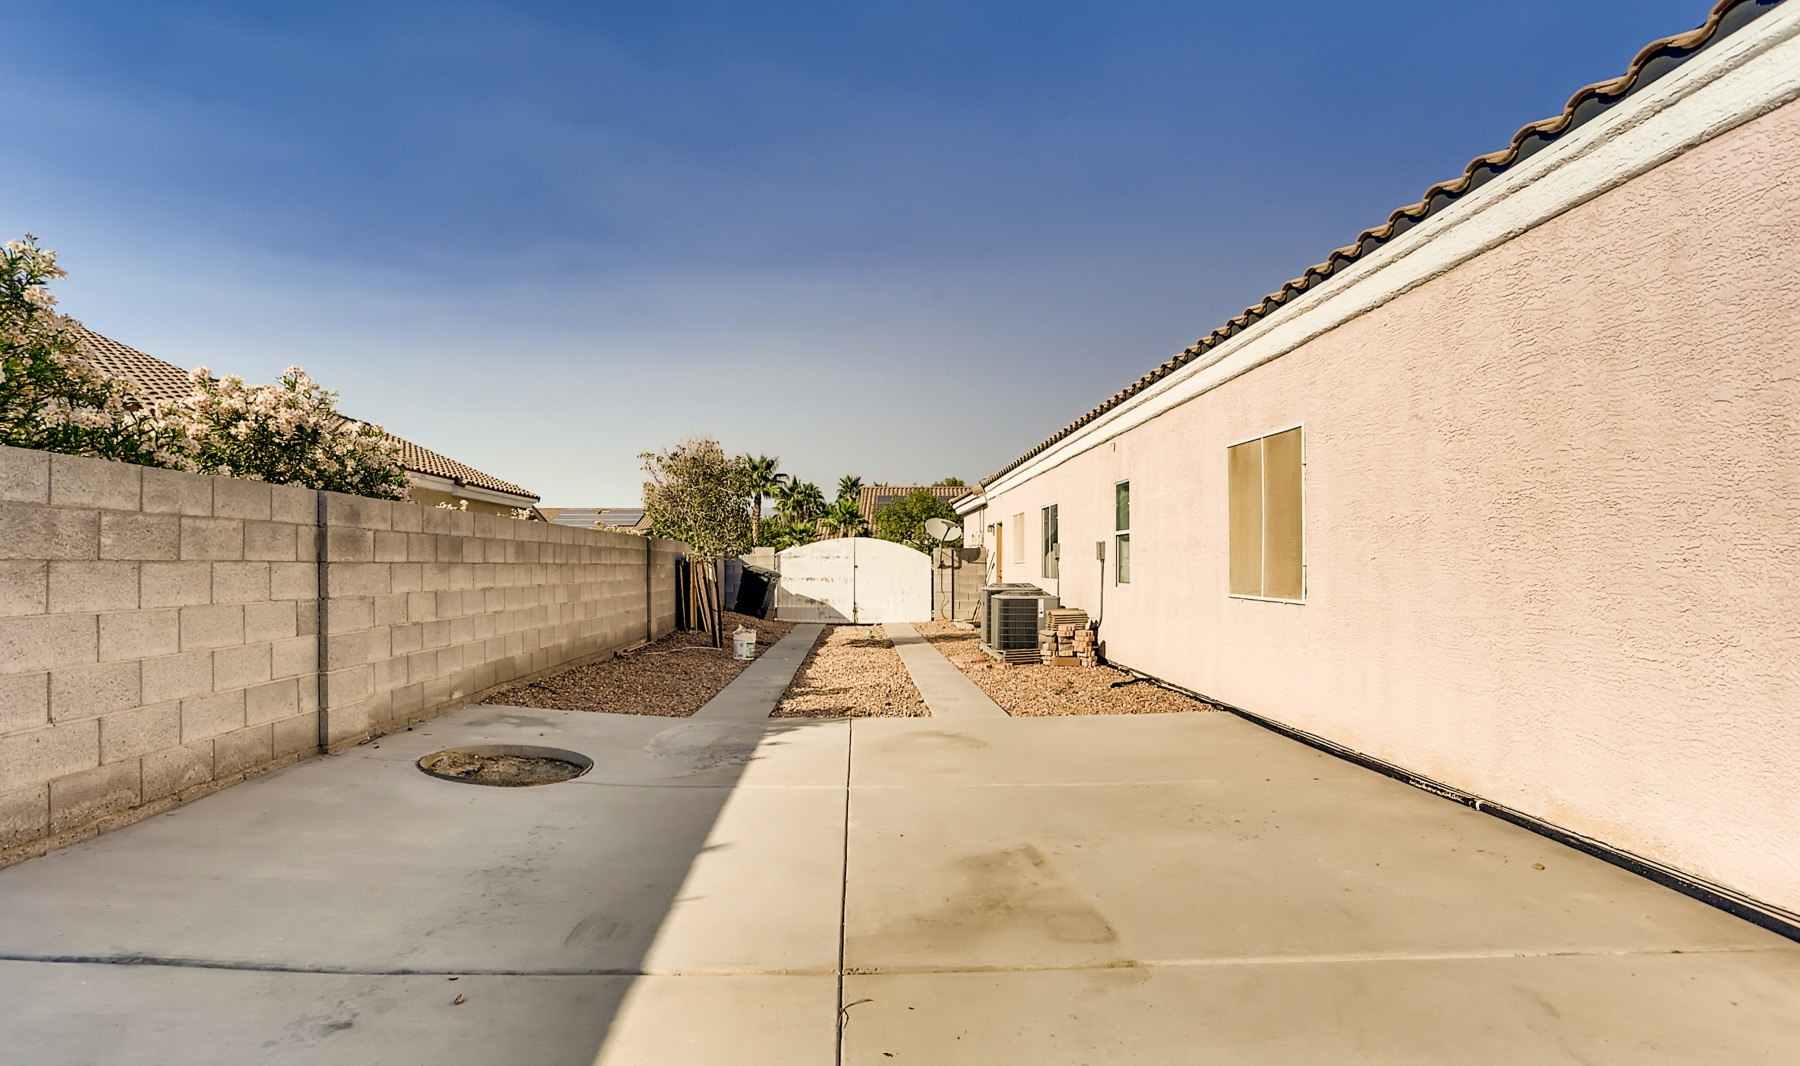 5213 Blue Evergreen Ave | Image Title